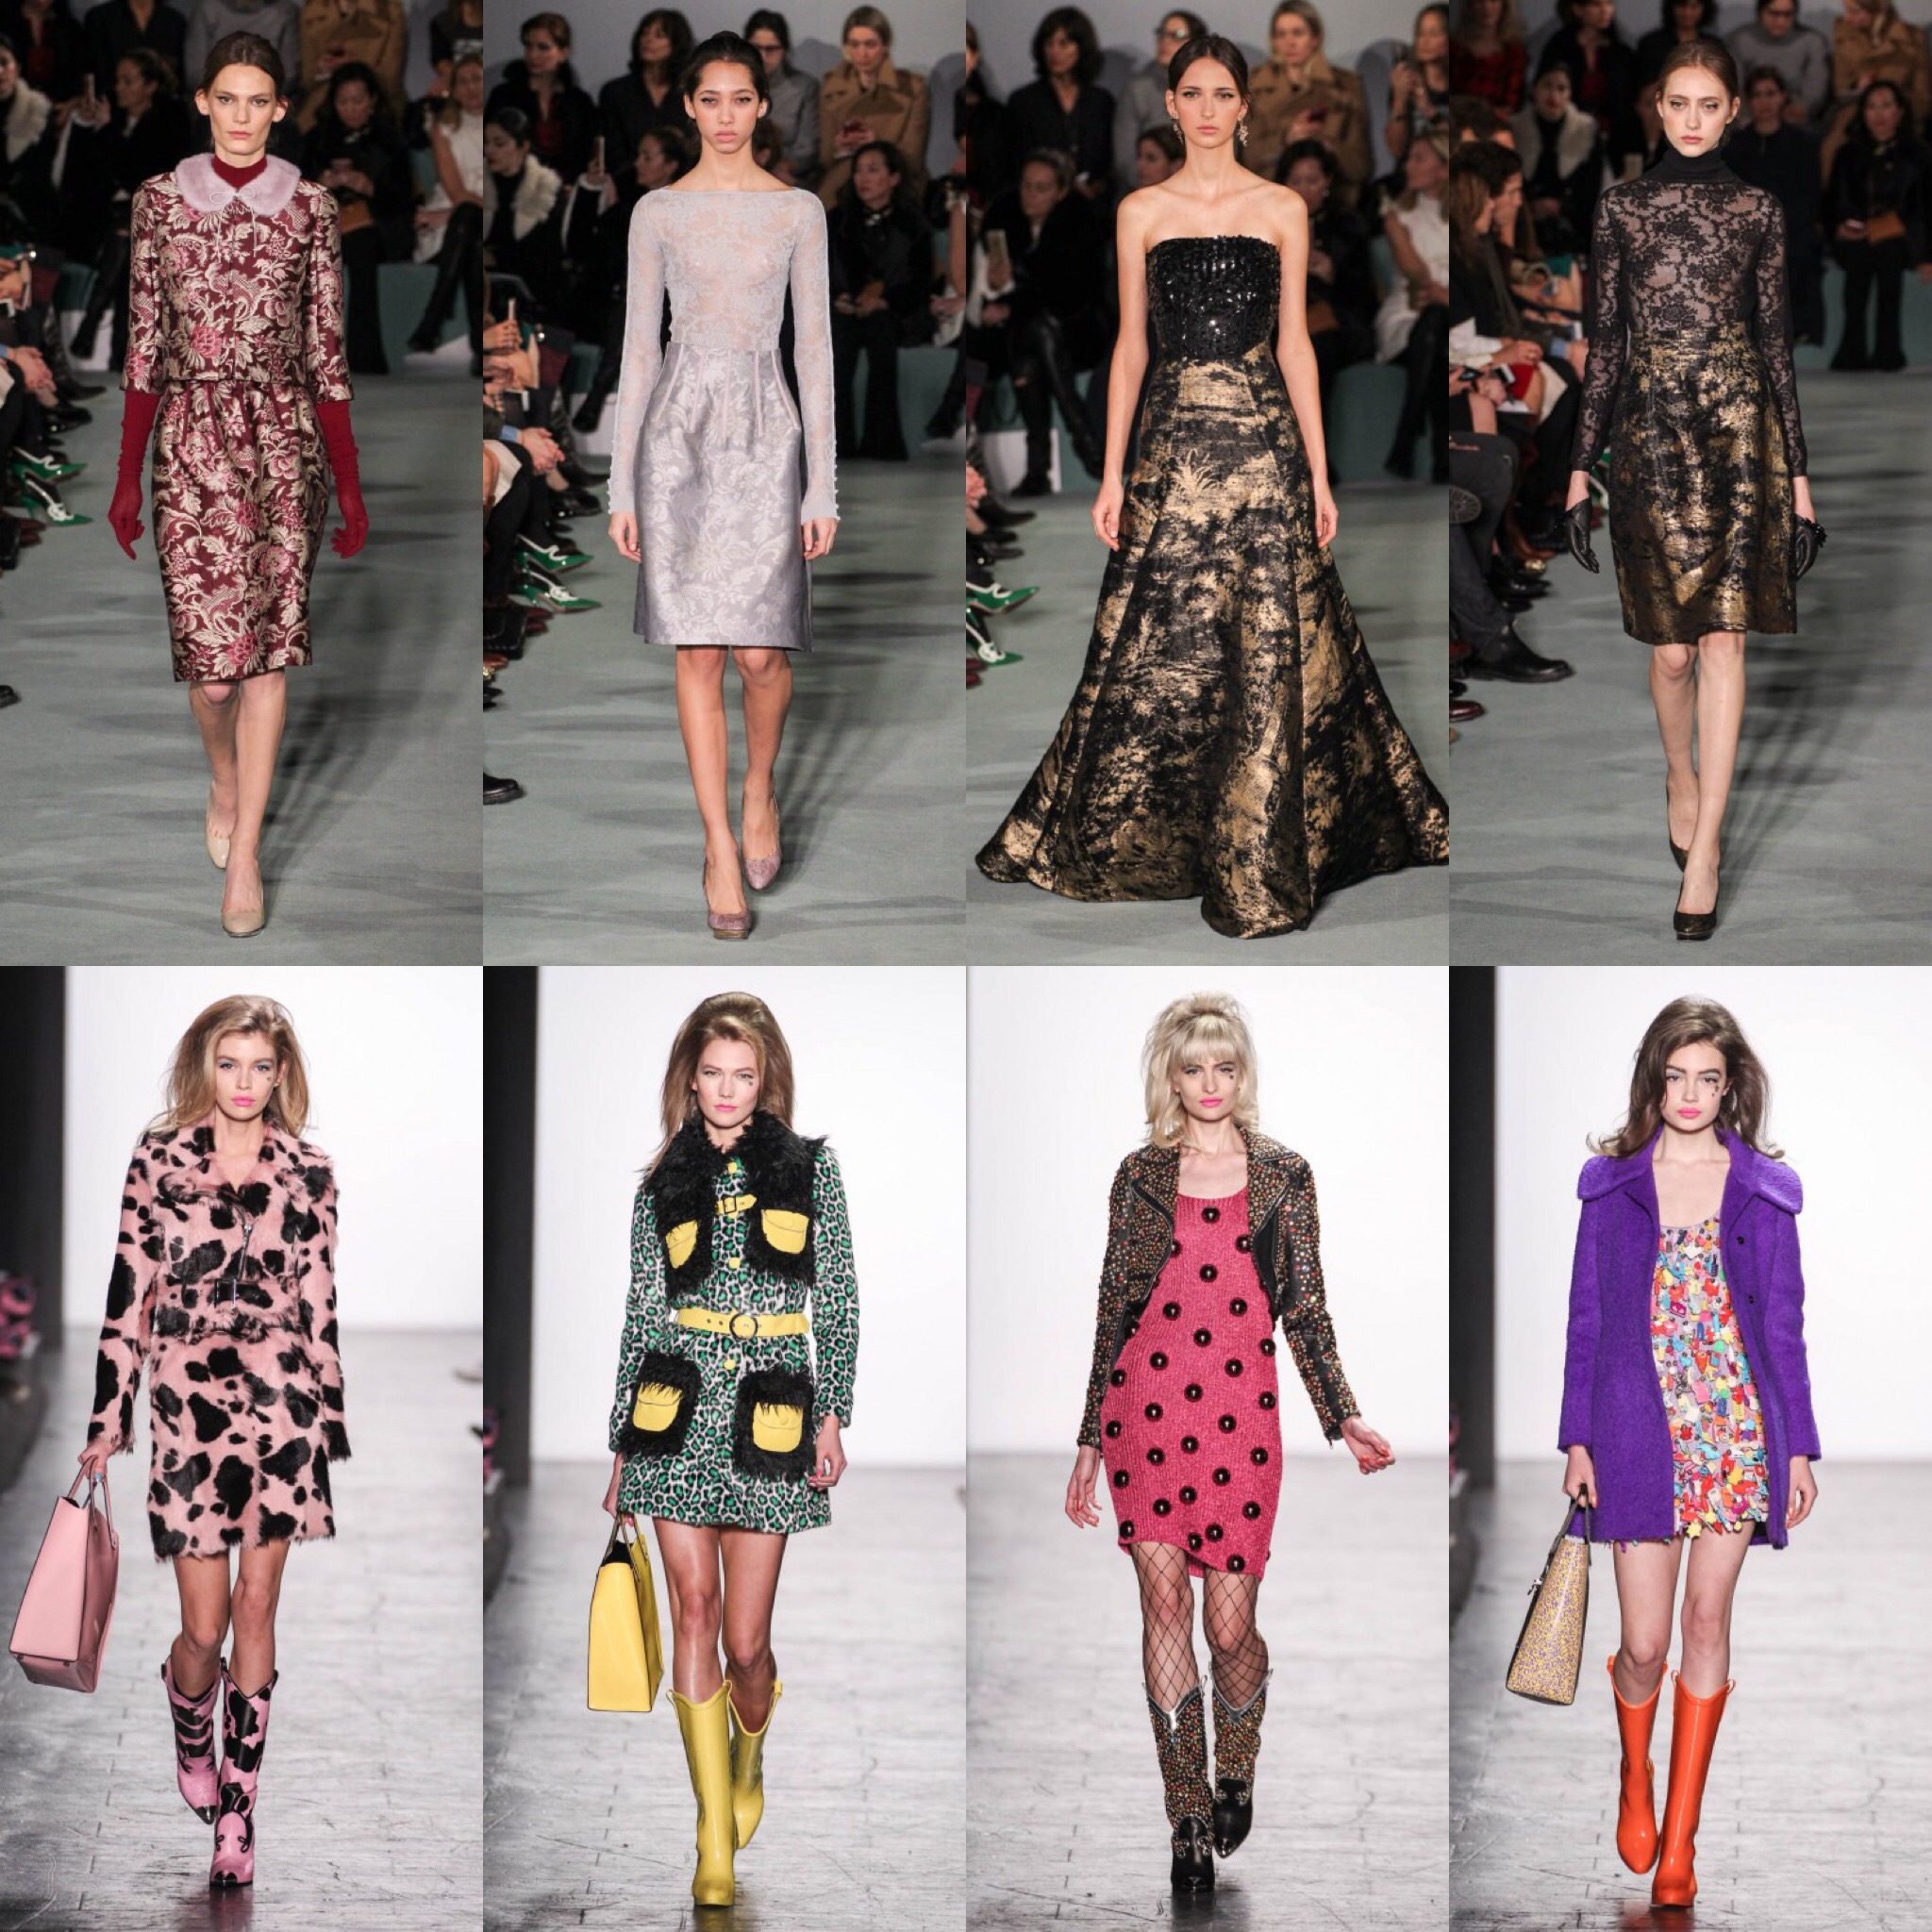 New York fashion week Jeremy Scott e Oscar de la Renta moda autunno inverno 2016